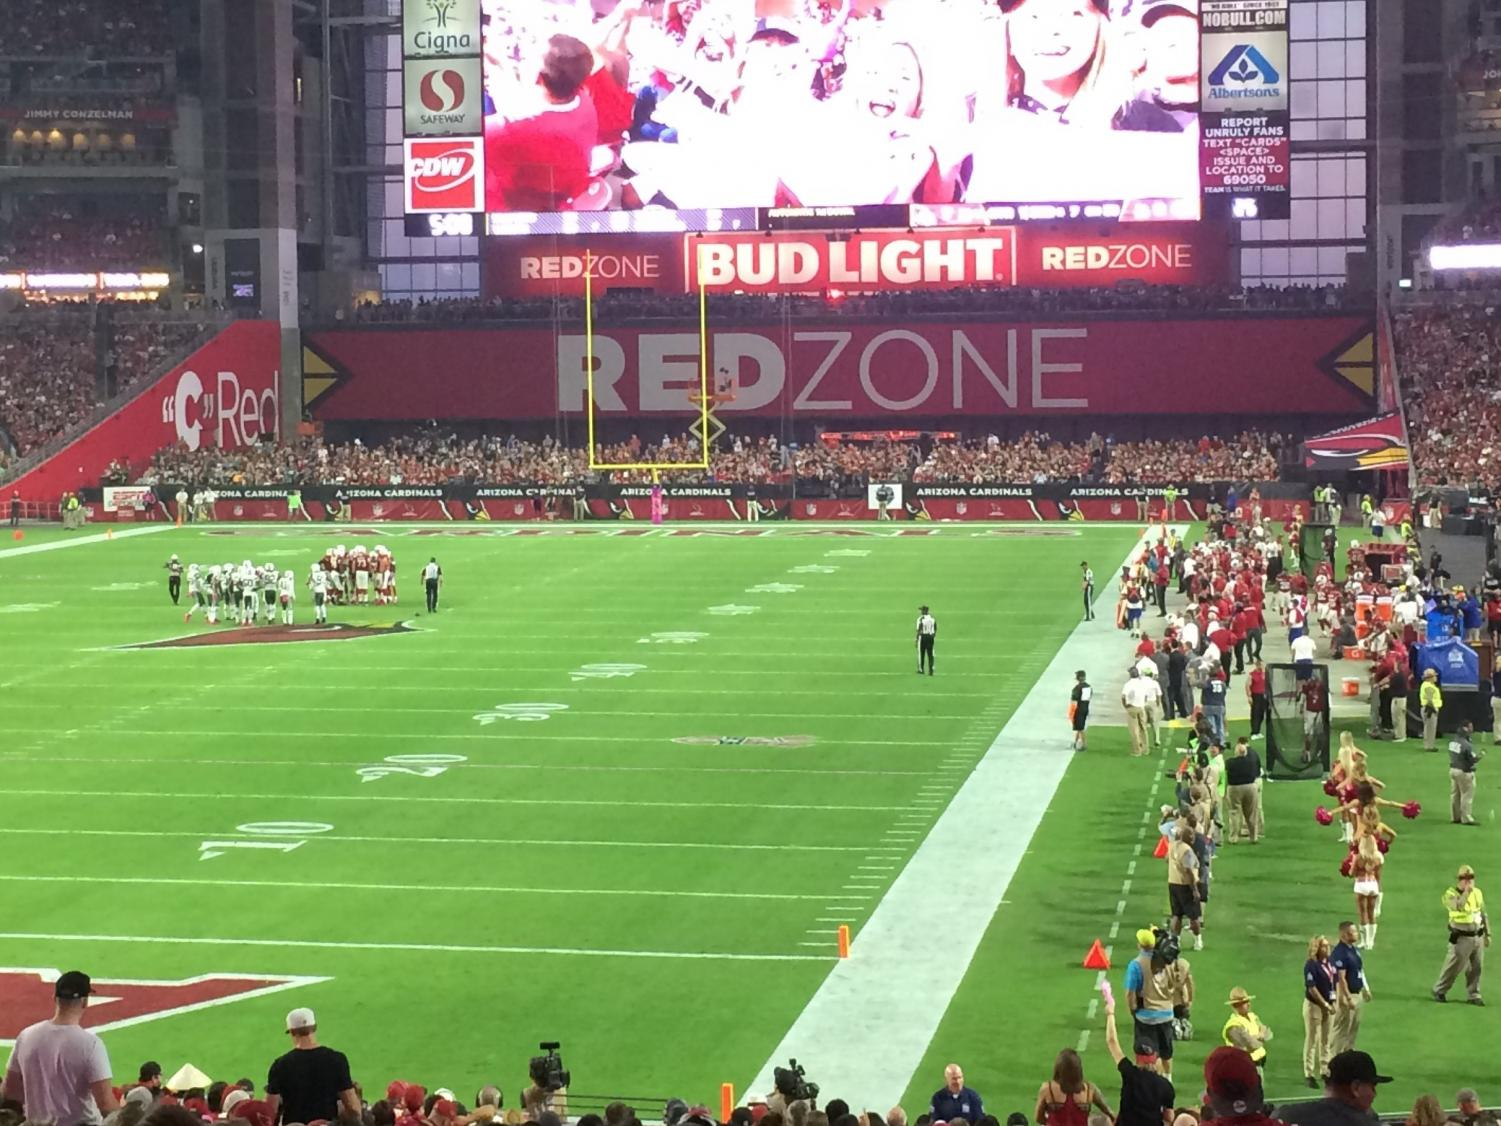 Inside State Farm Stadium during a Cardinals game